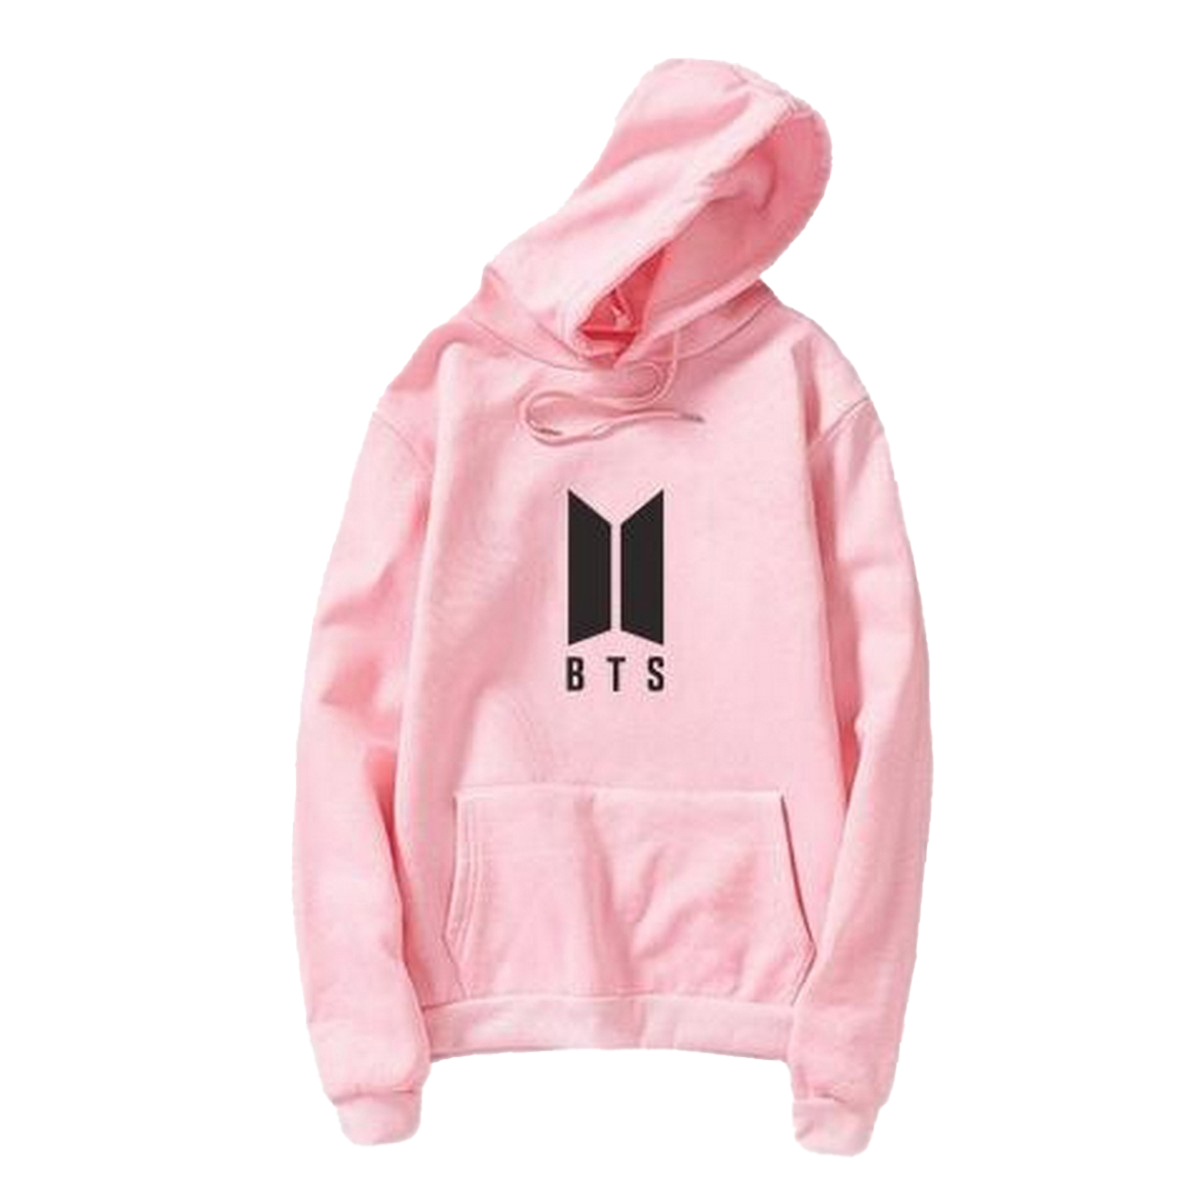 BTS Baby Pink Hoodie Pocket Drawstring Hooded Casual Pullover